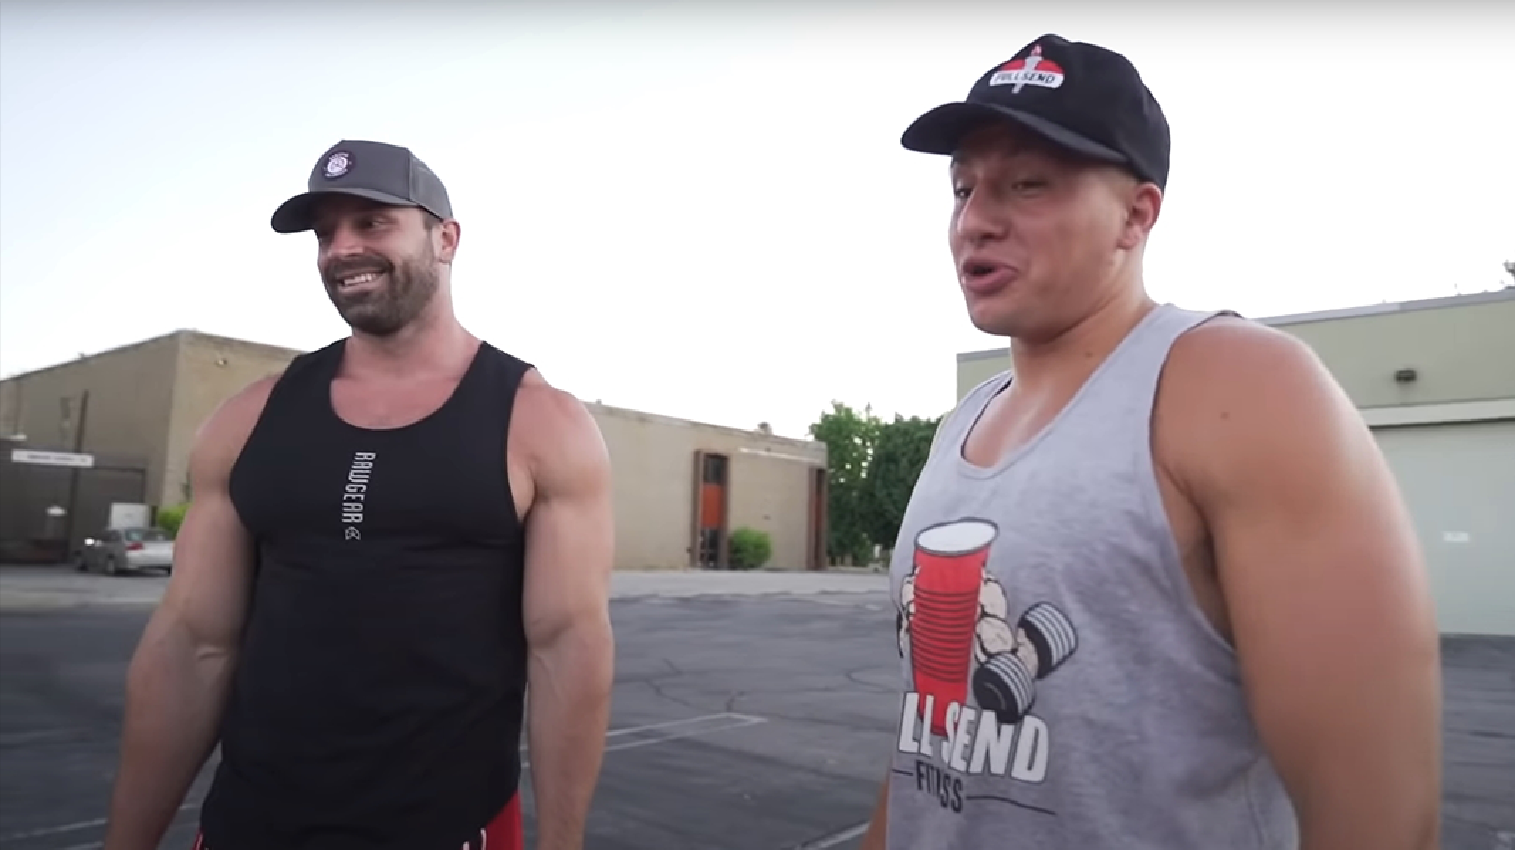 Stevewilldoit Pranks Bradley Martyn With Custom Tesla Model X Dexerto Stevewilldoit is a youtuber who got famous after teaming up with nelk boys and posting insane videos online. stevewilldoit pranks bradley martyn